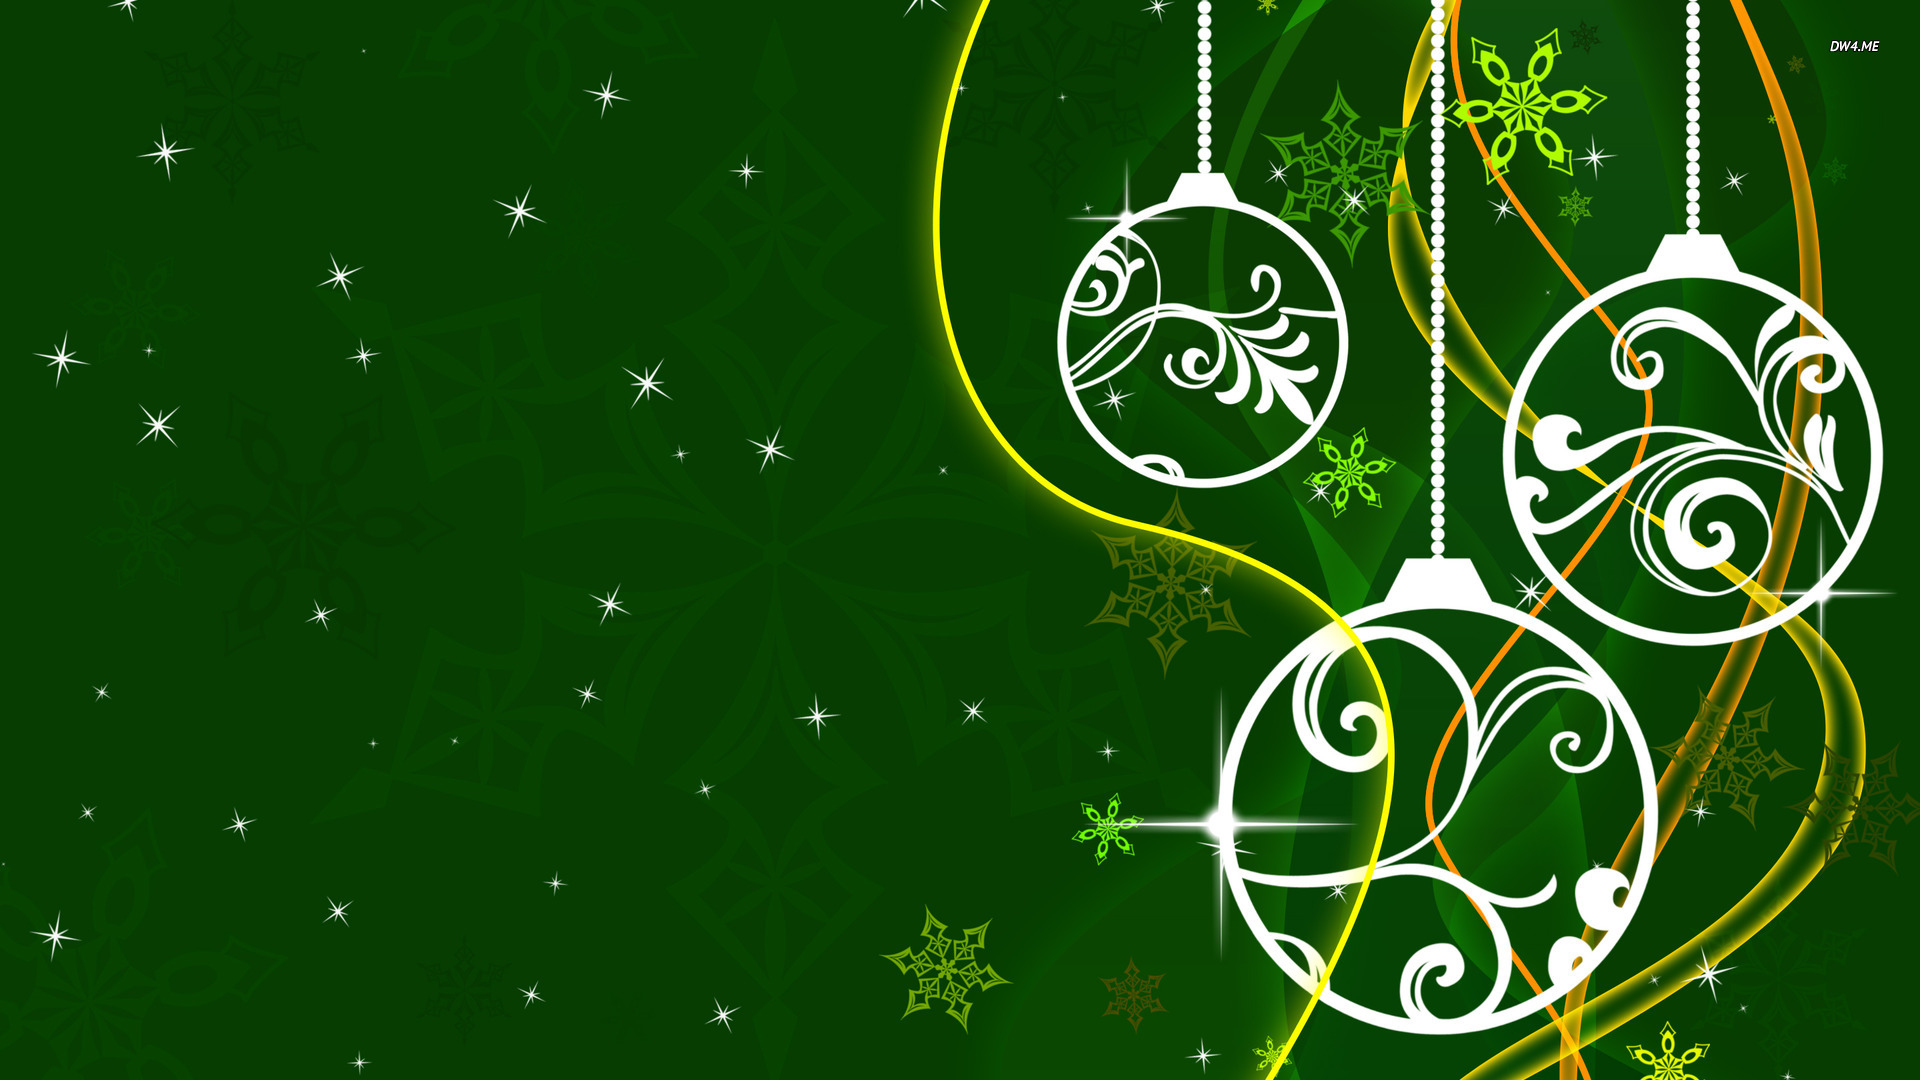 Green Holiday Backgrounds